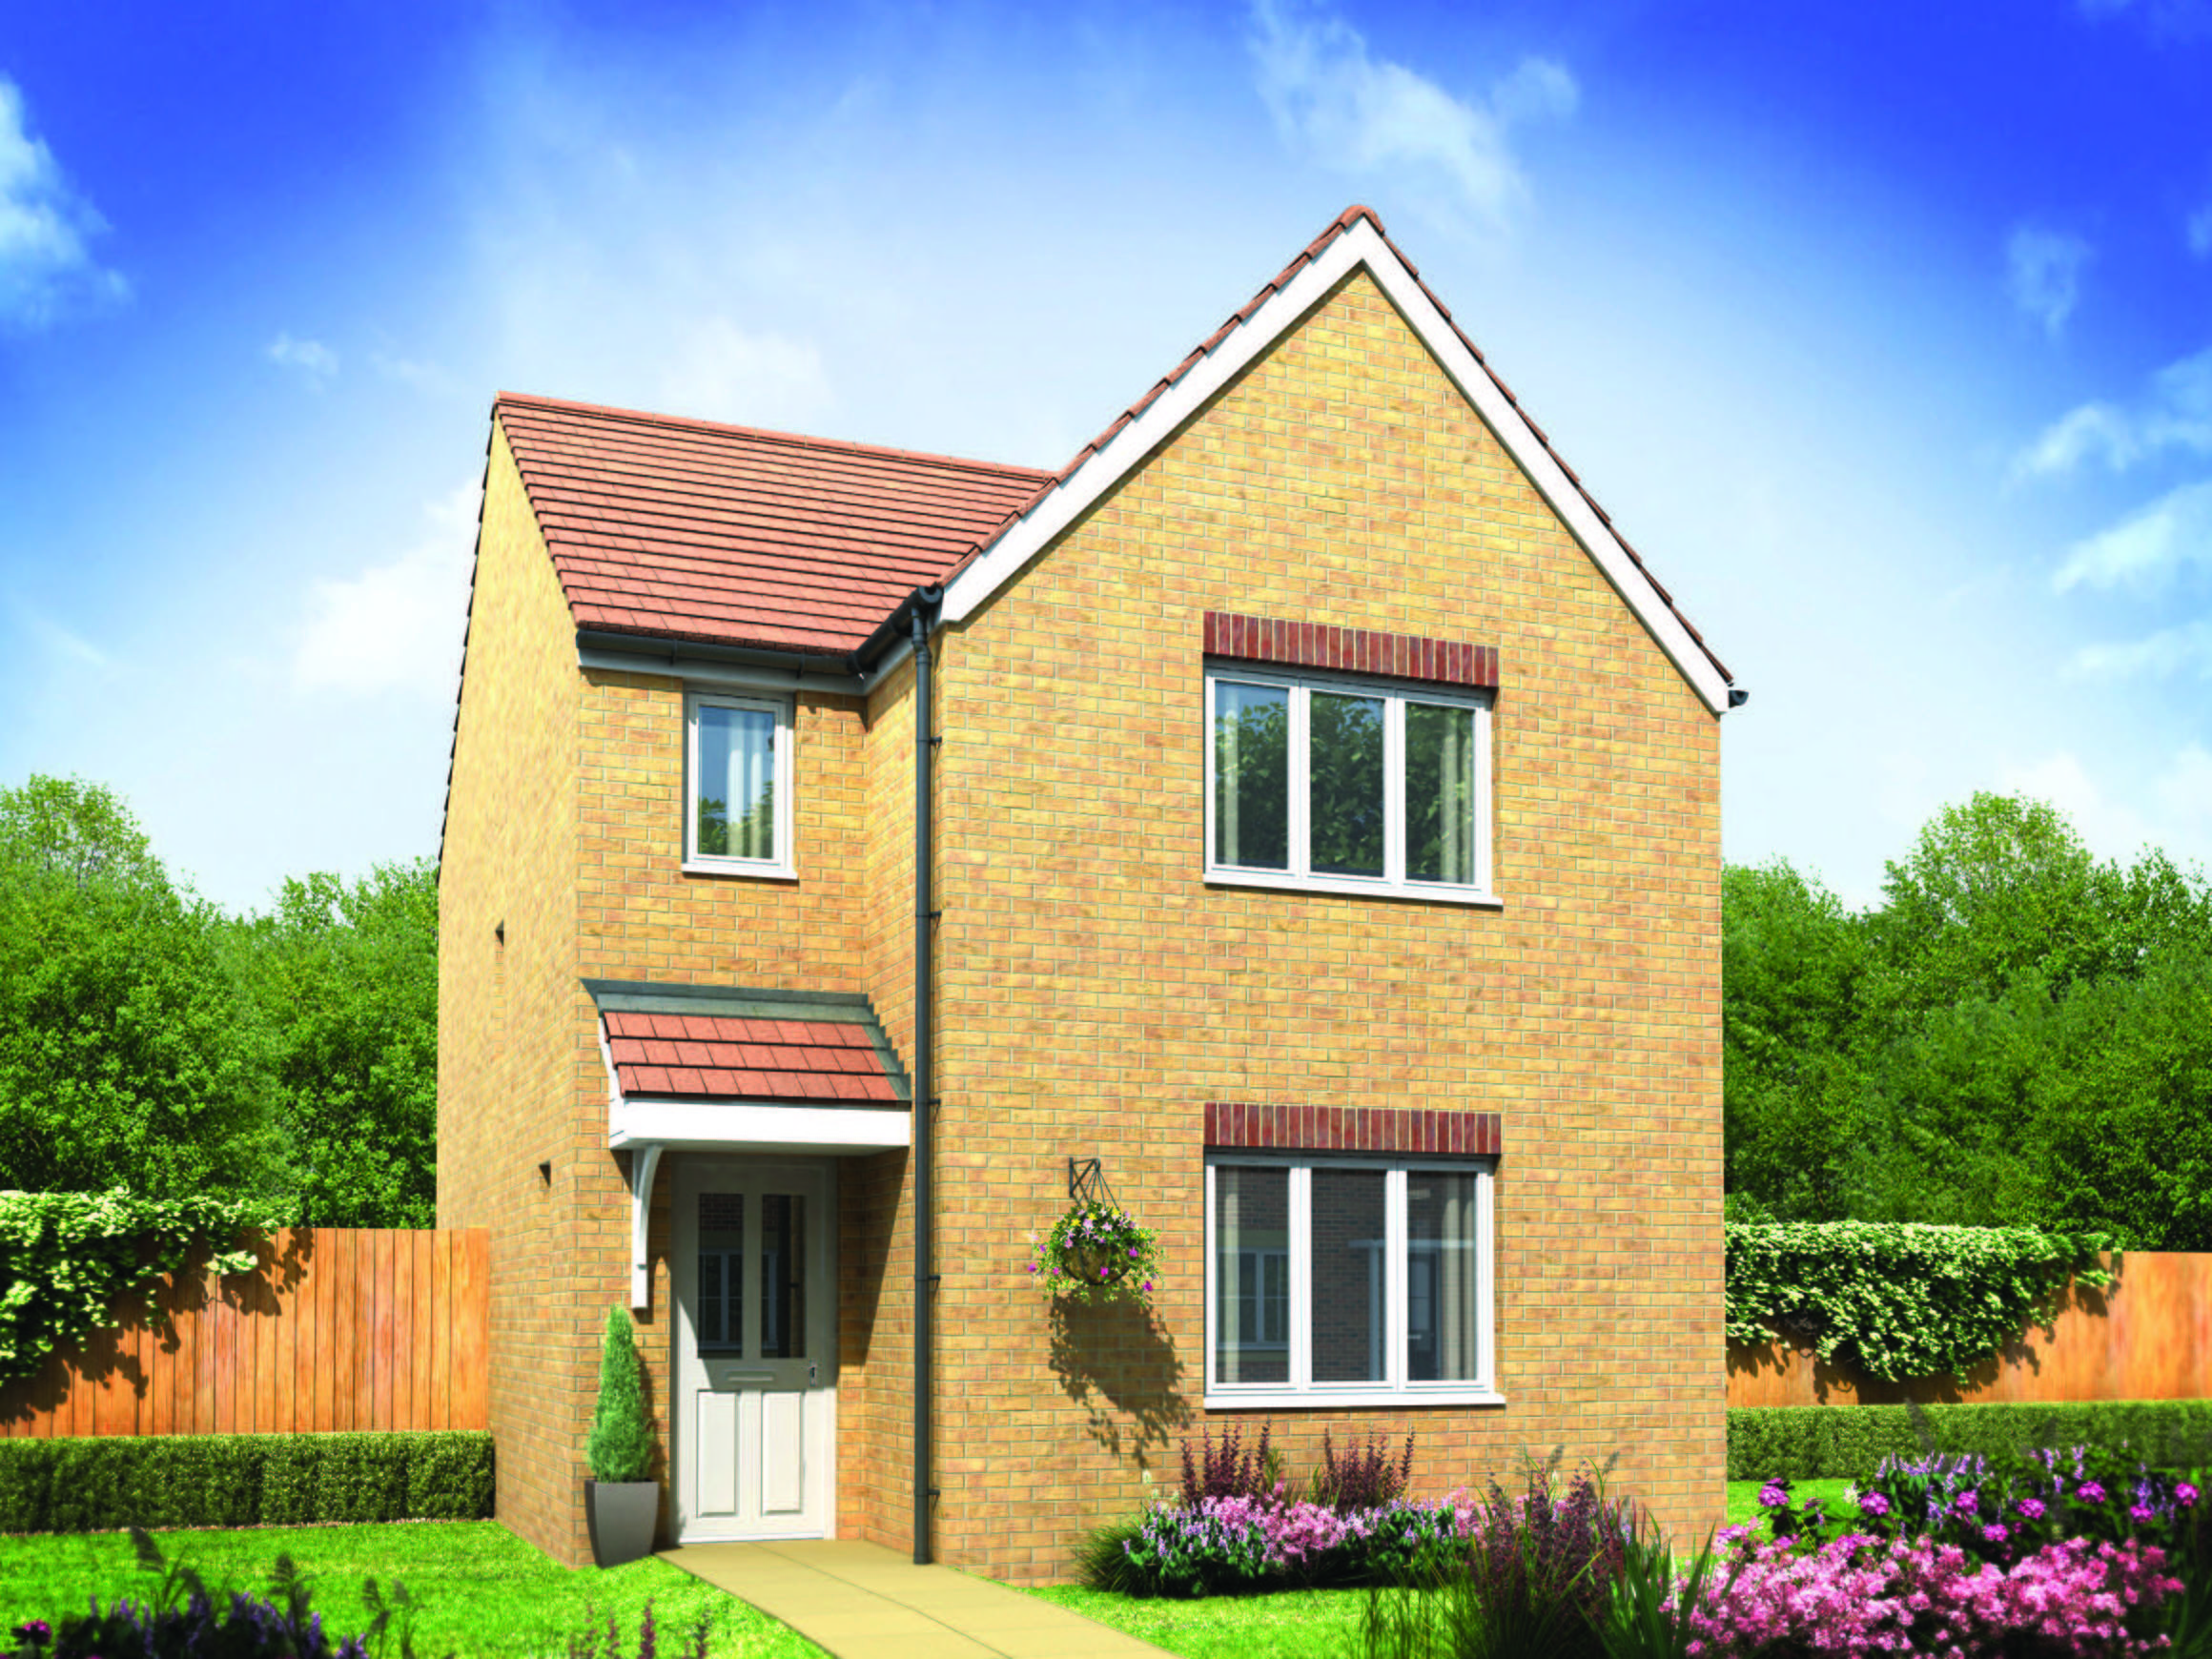 Best Houses For Sale In Bristol Bristol Bs16 7Aq The Ridge With Pictures